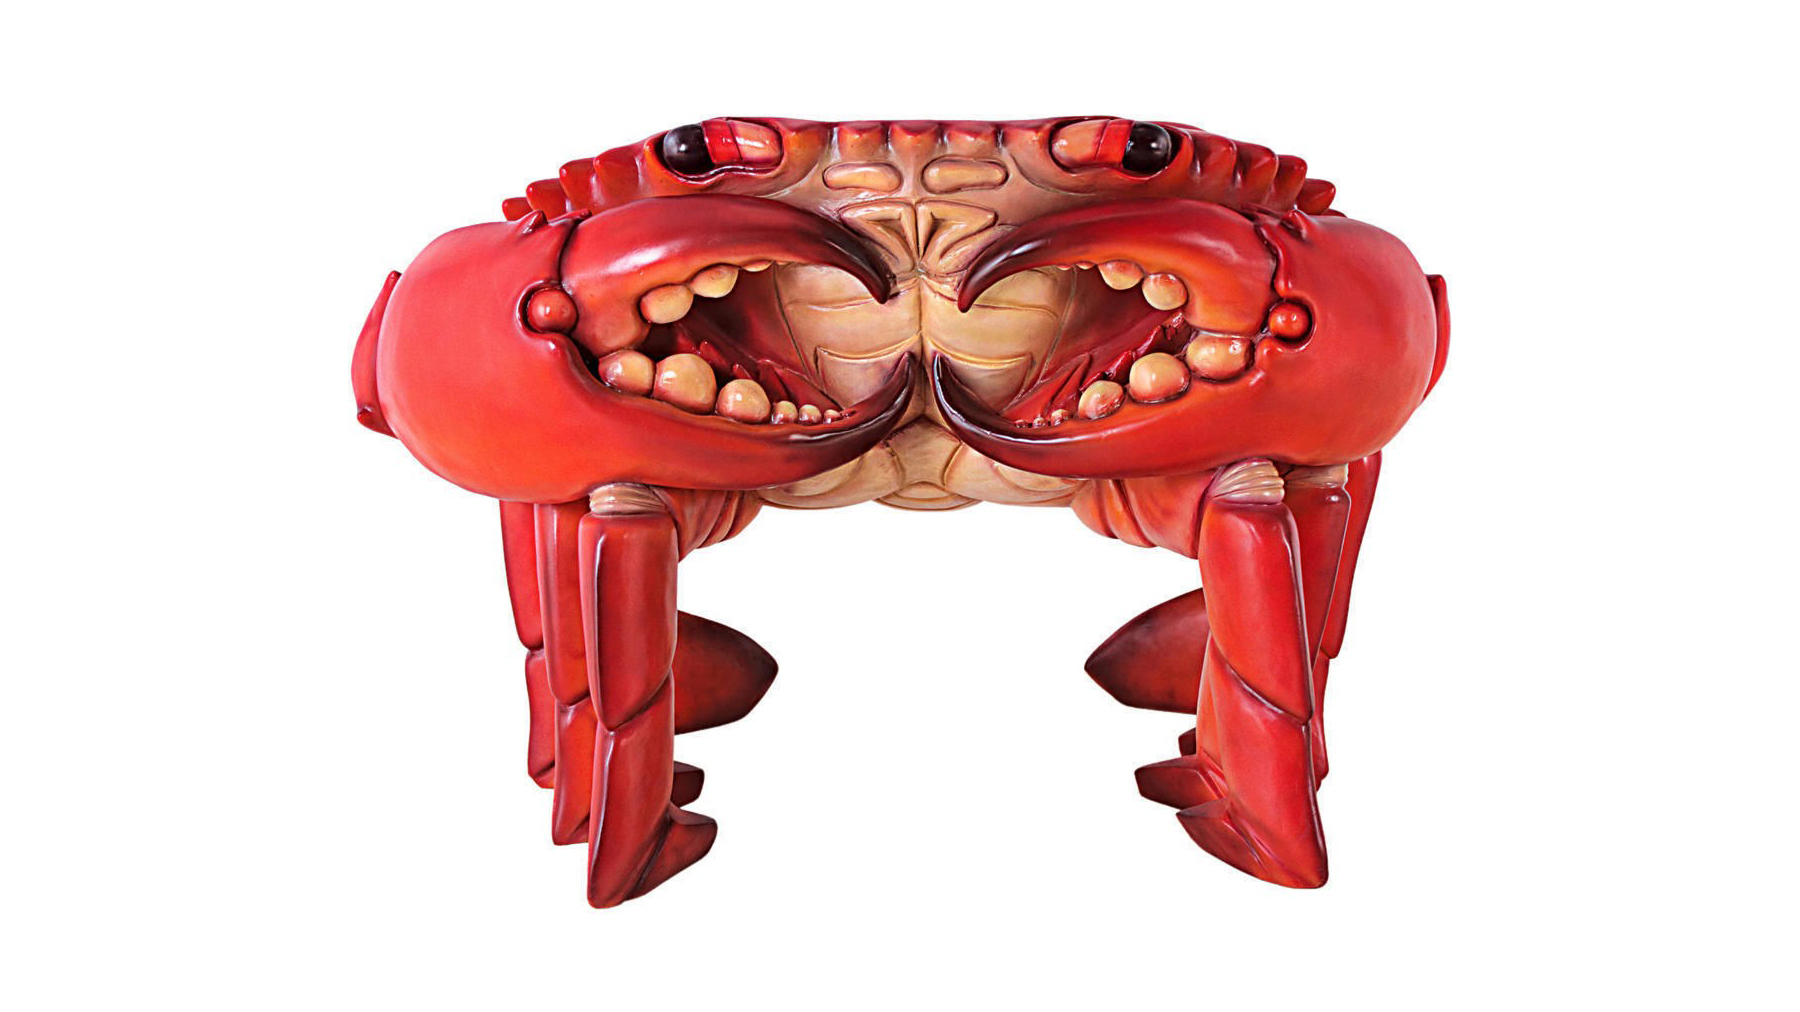 The Giant Red King Crab Sculptural Chair